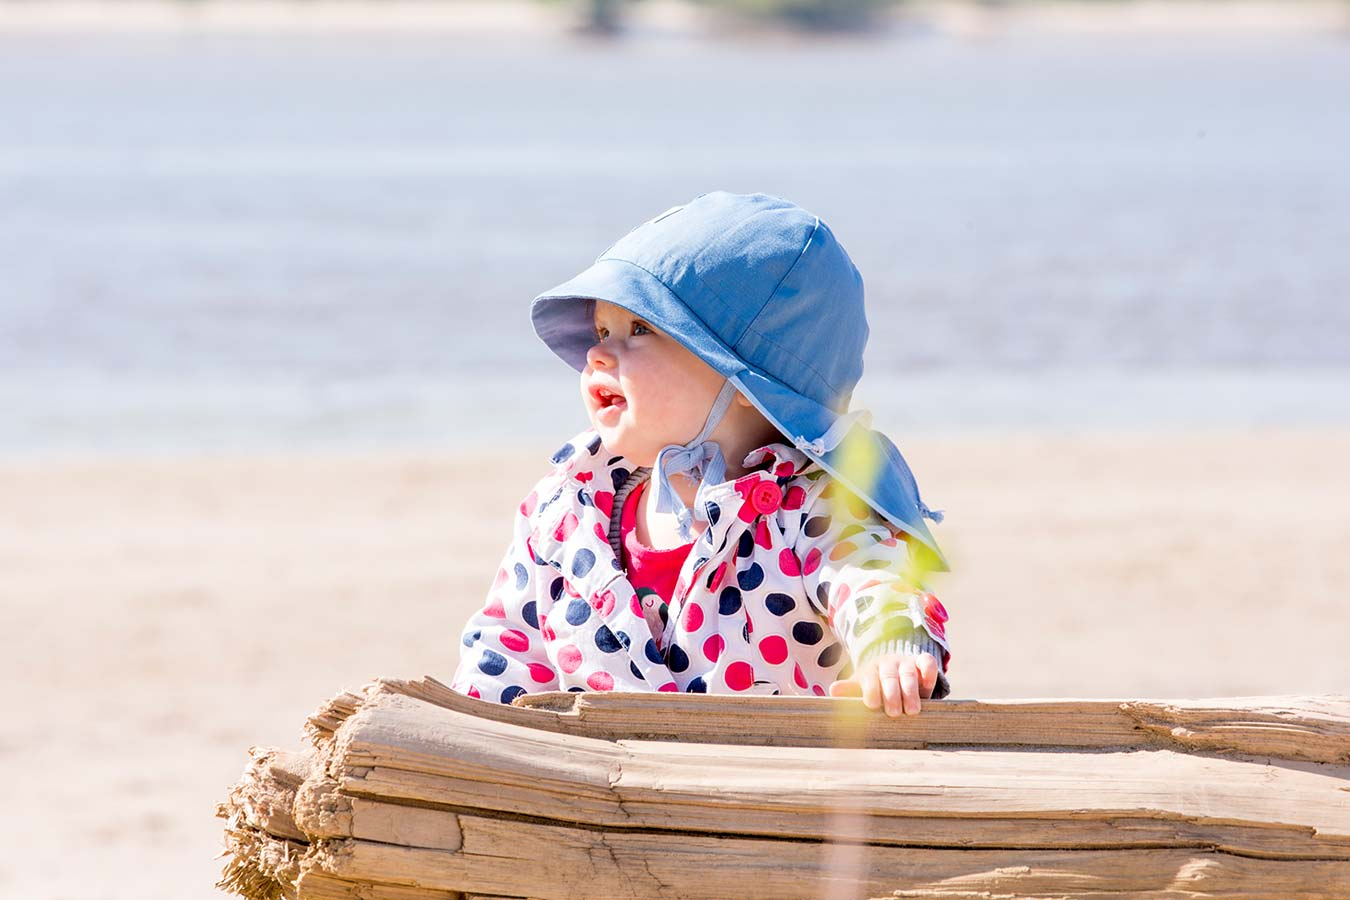 Pickapooh sun hats are amazing for babywearing in summer as they are made from 100% cotton and have a natural UV filter.